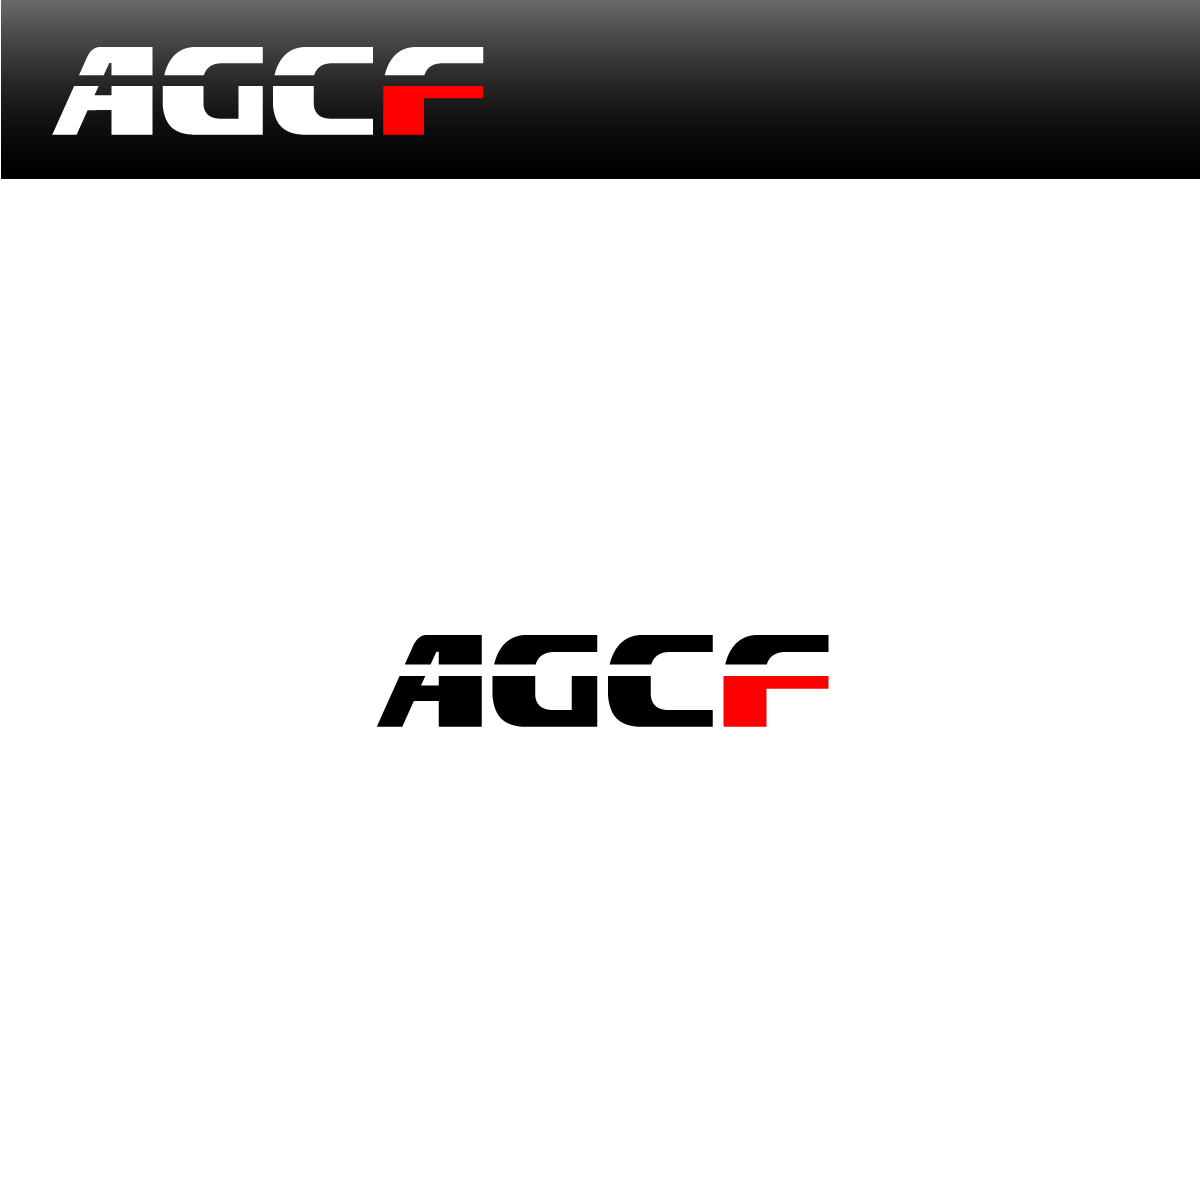 Logo Design by rockin - Entry No. 107 in the Logo Design Contest Imaginative Logo Design for AGCF.